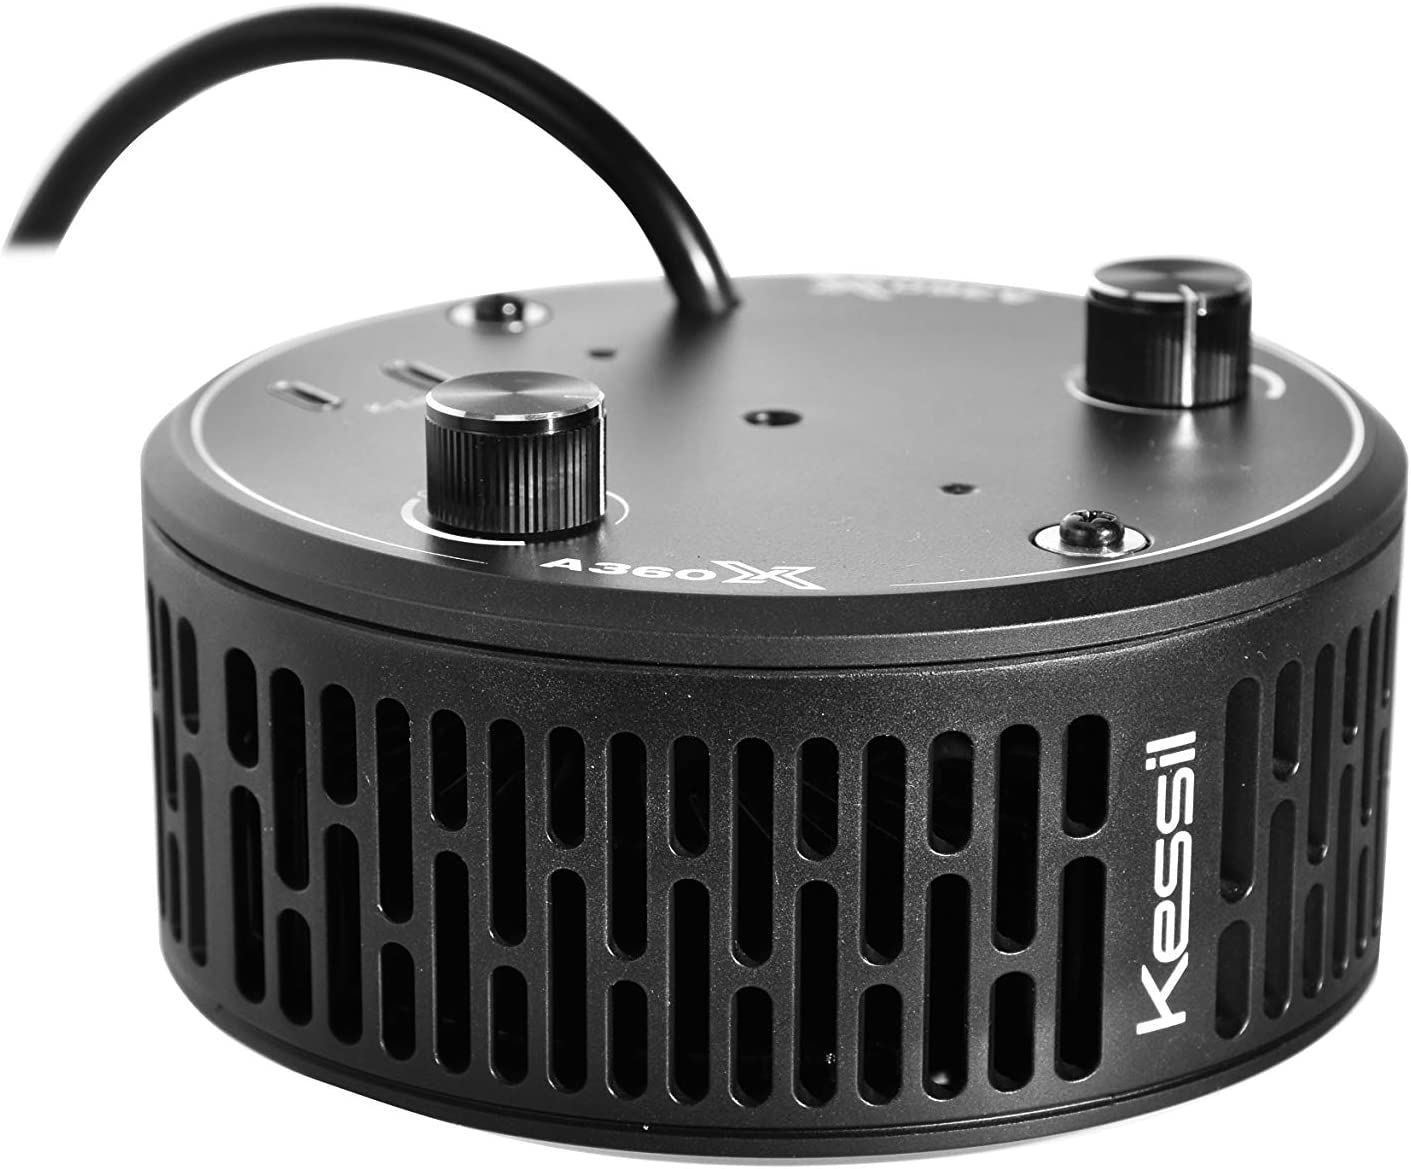 kessil a360x review